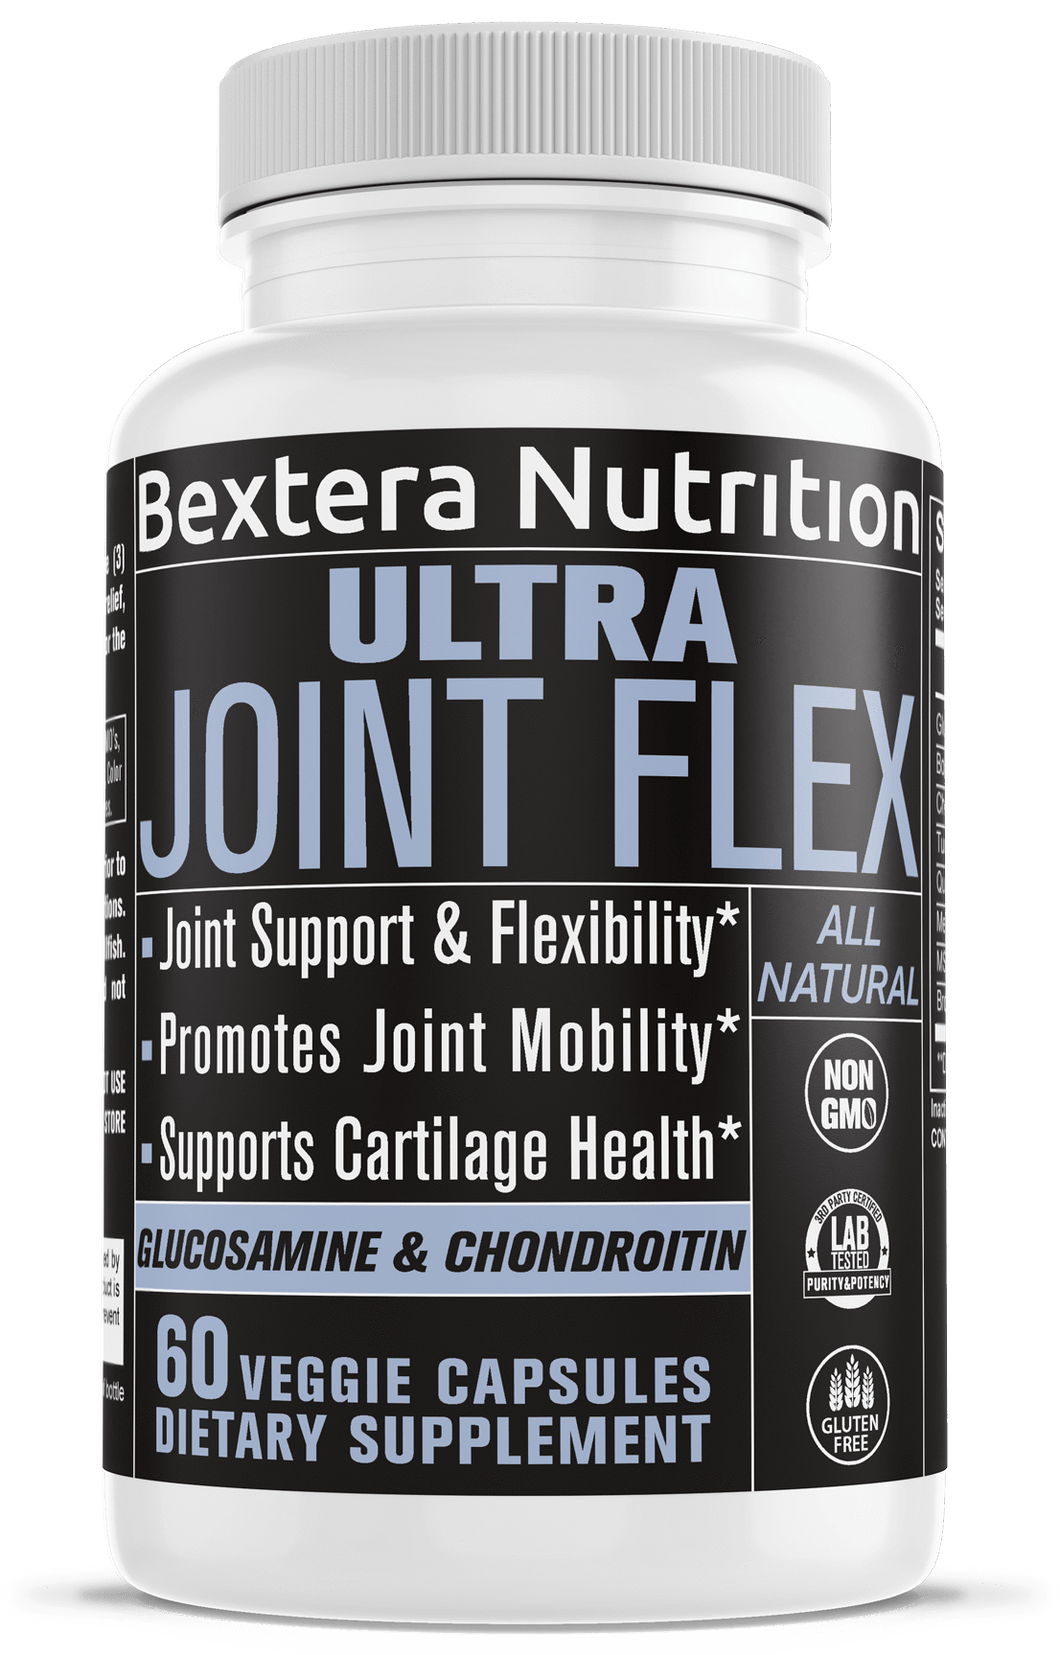 Bextera Nutrition - Ultra Joint Flex - Bextera Nutrition